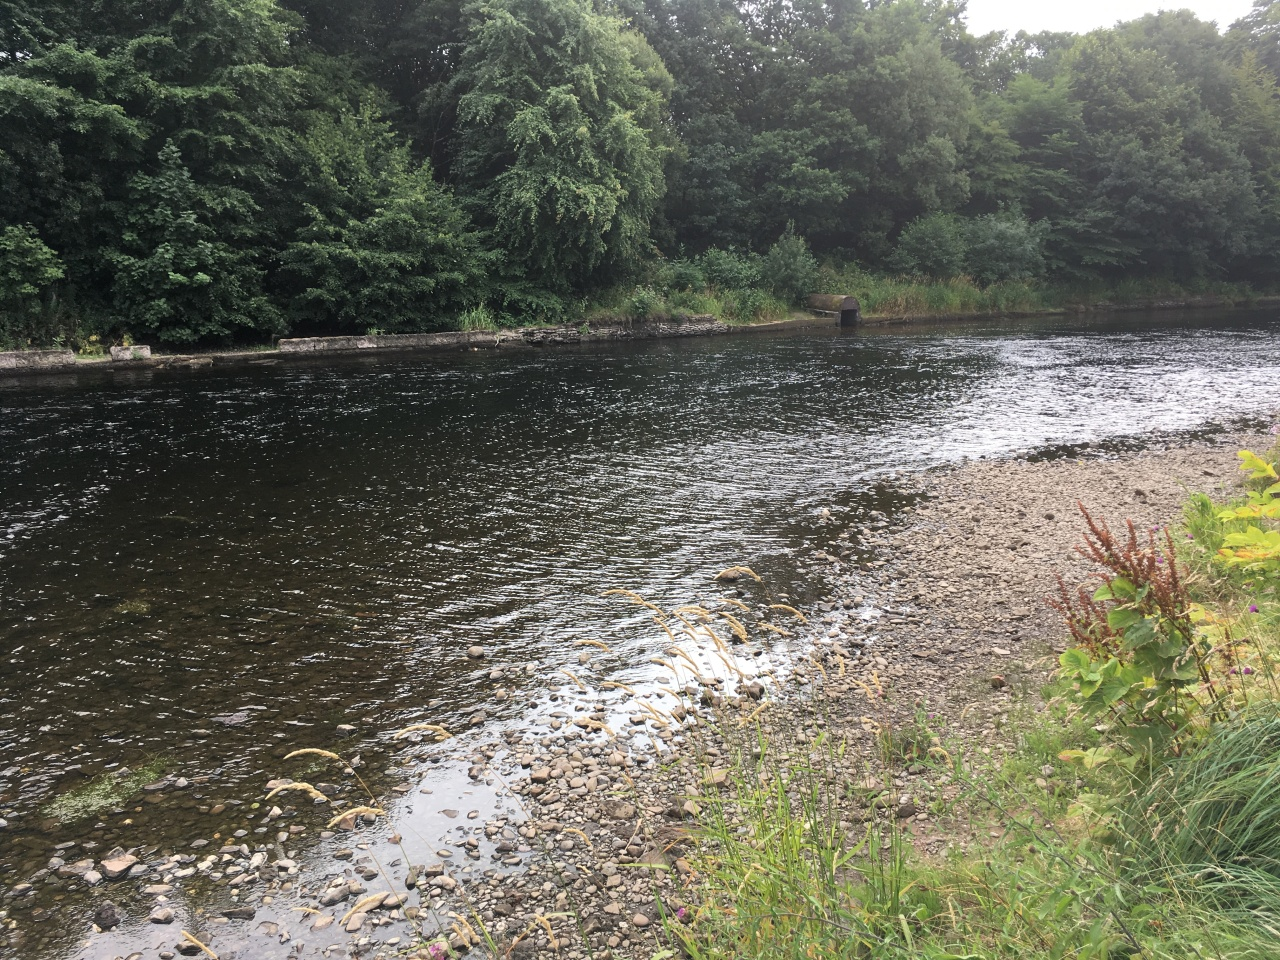 The River Leven showing its Bones